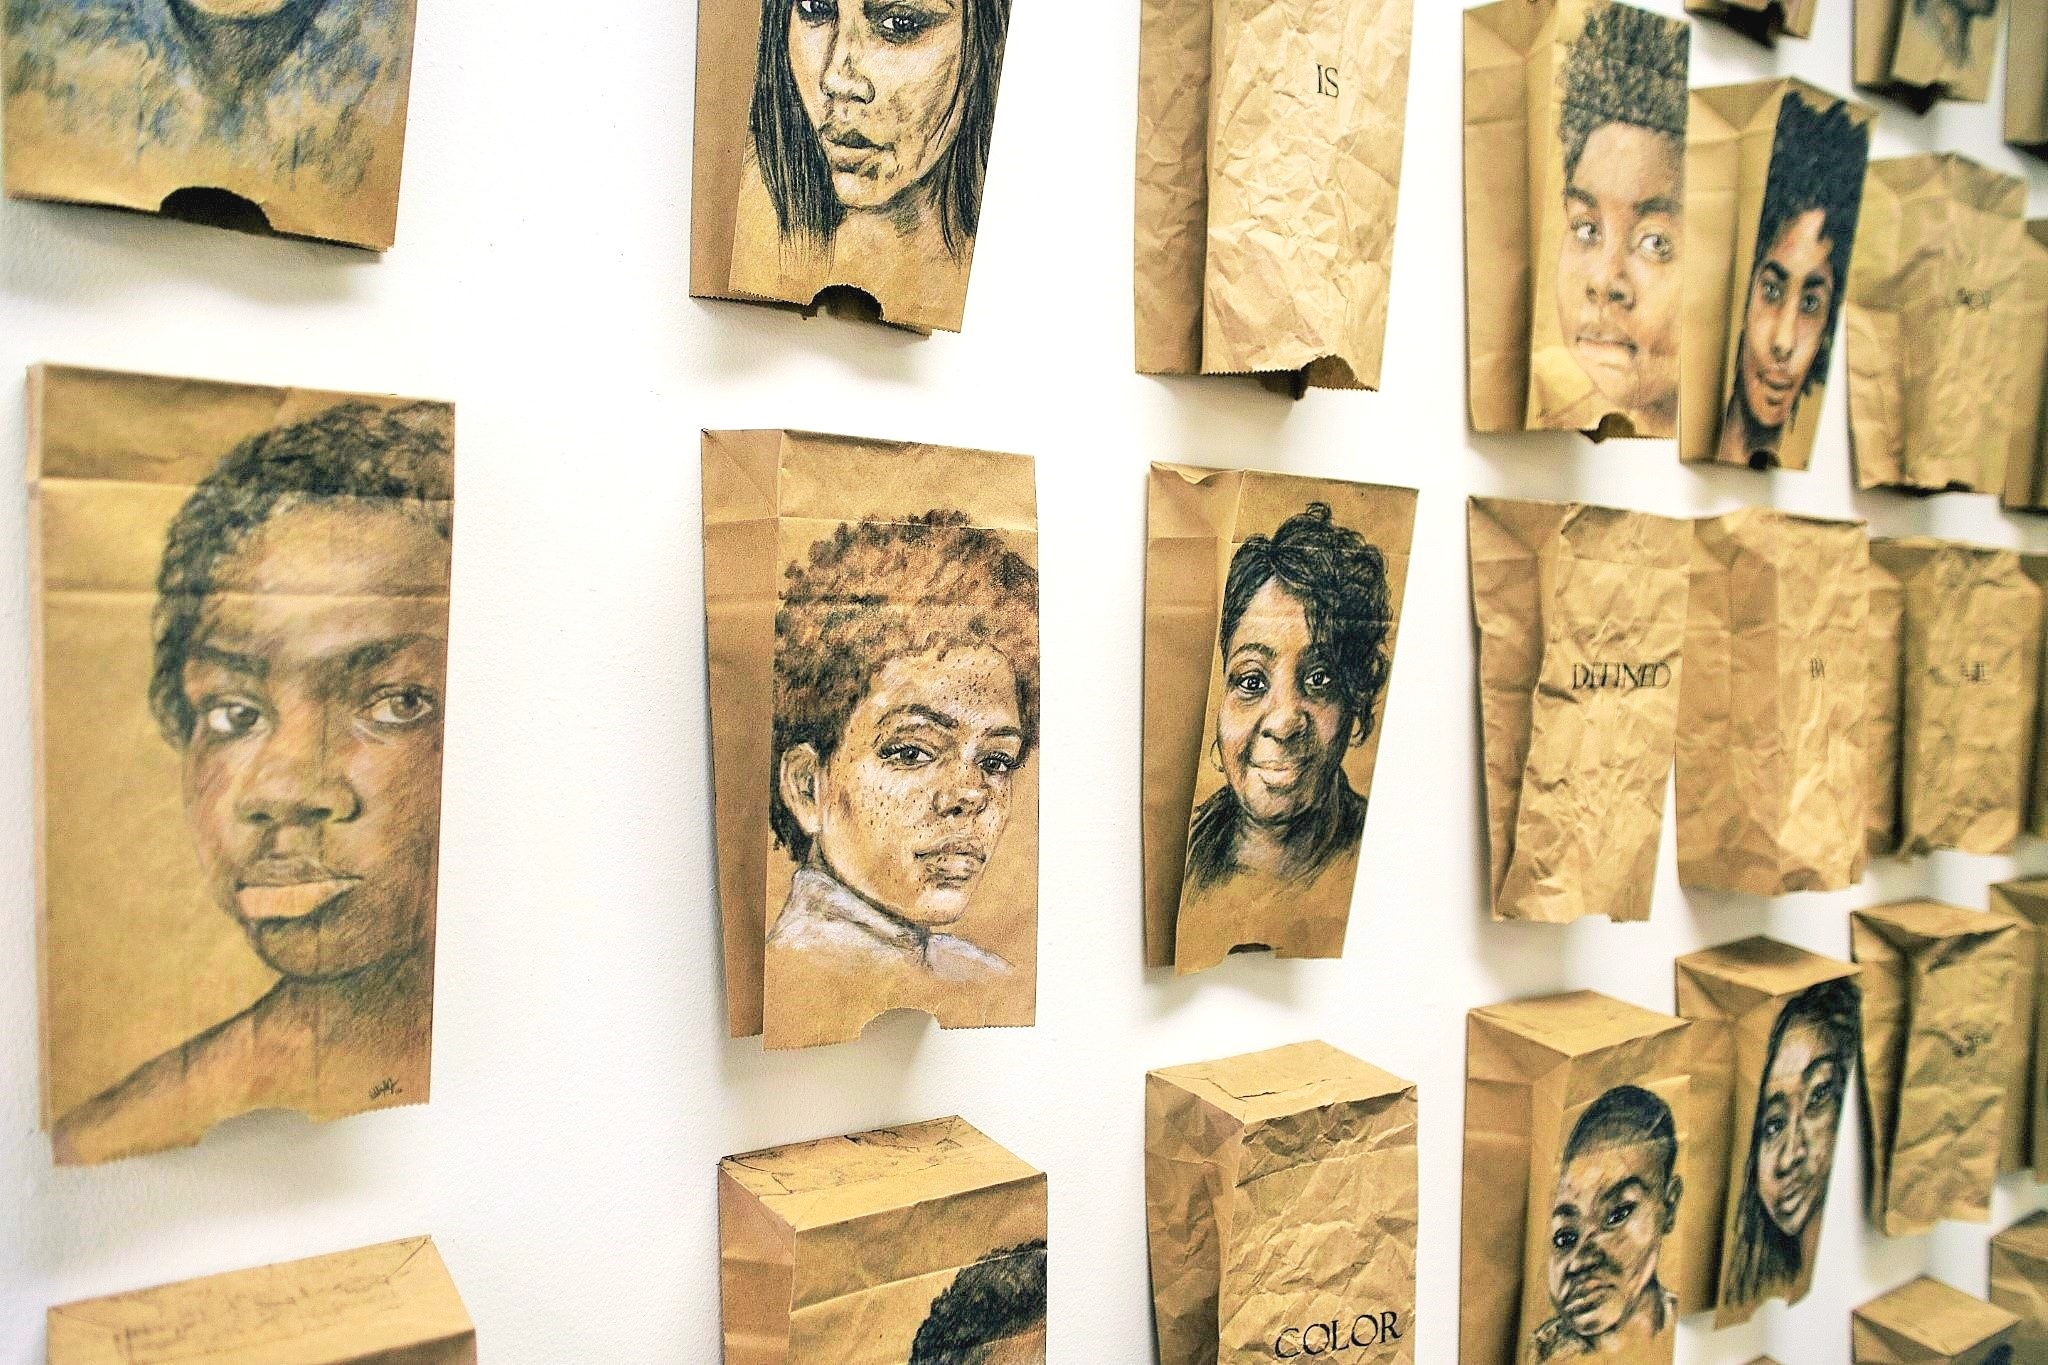 The Brown Paper Bag Test Series   The Brown Paper Bag Test series is in reference to the actual unscientific test that was given by African-Americans to assess privilege by skin tone.